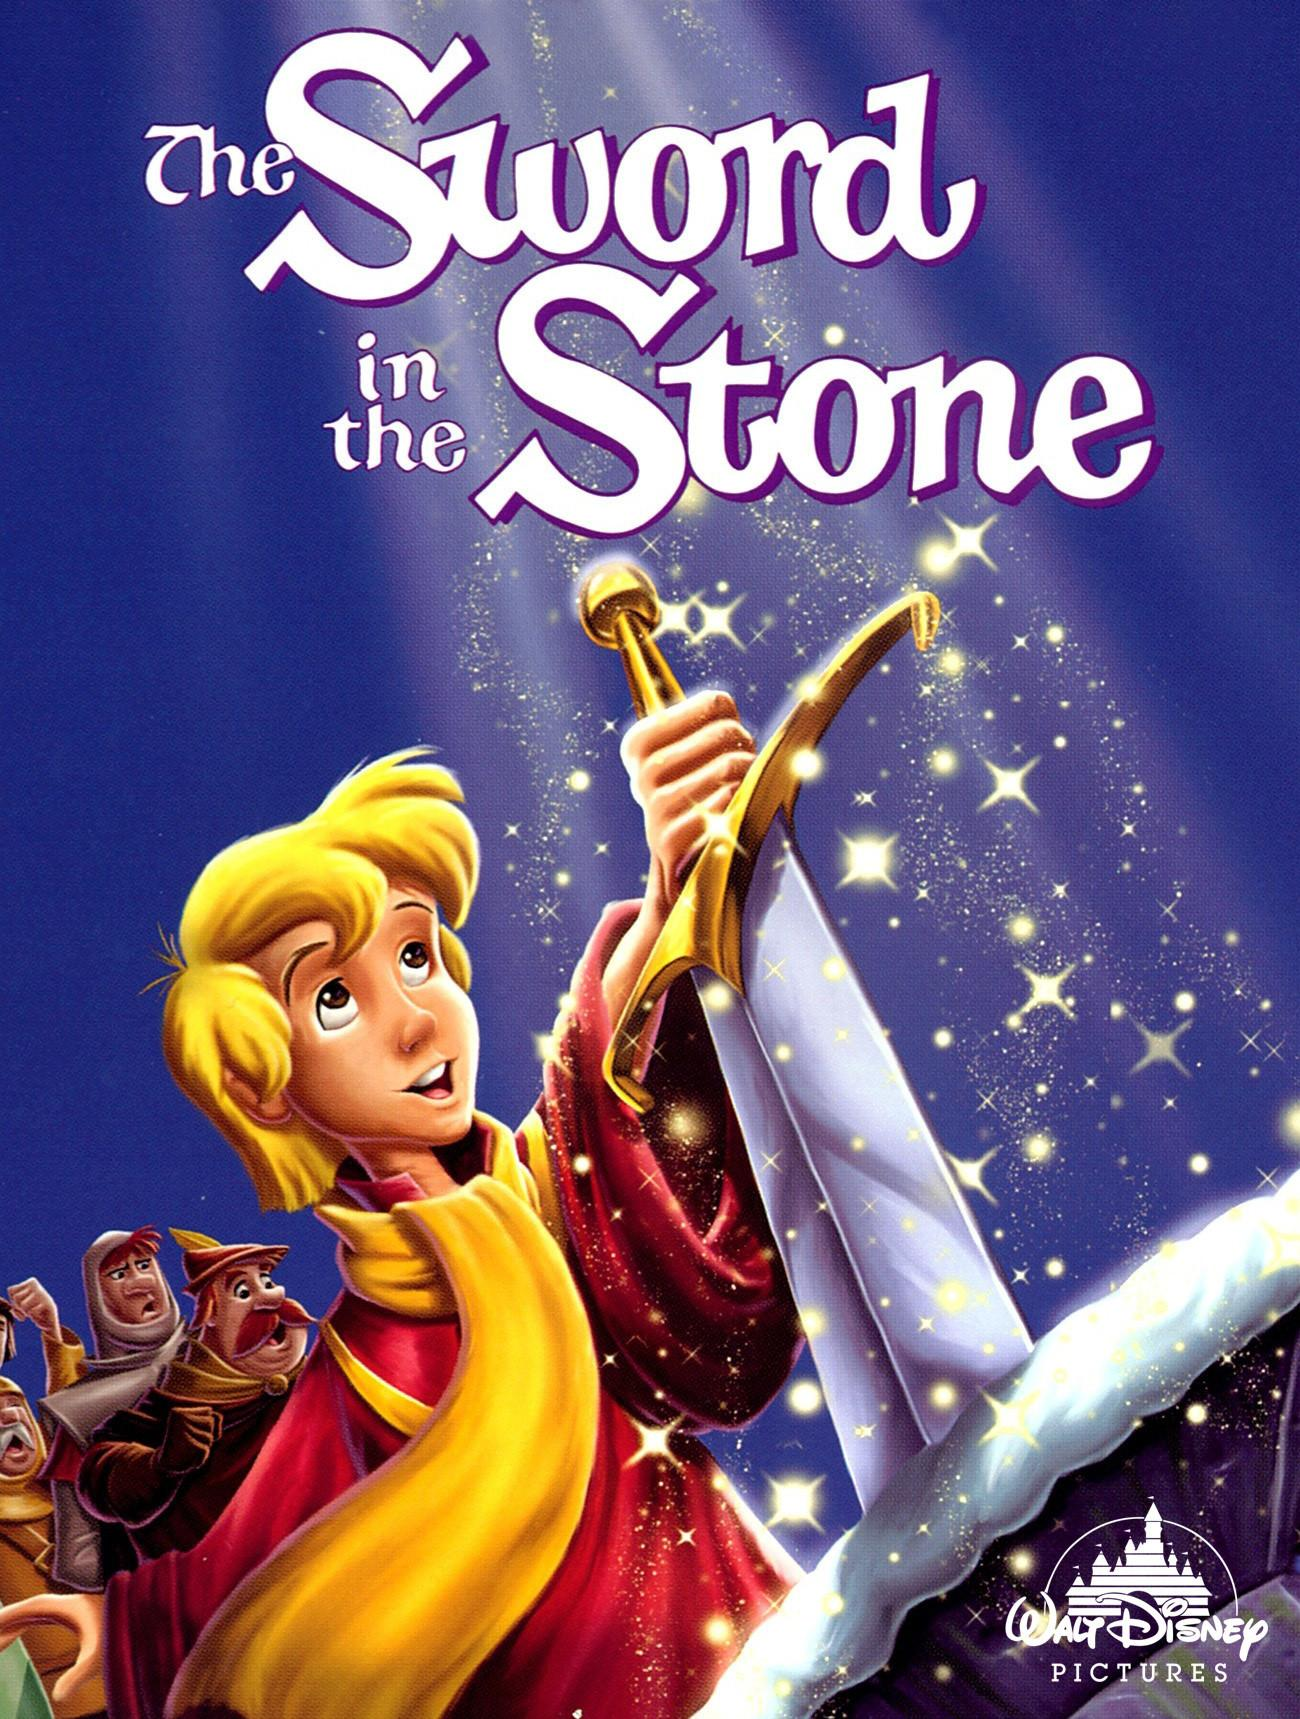 The sword in the stone book 1939 the adventures